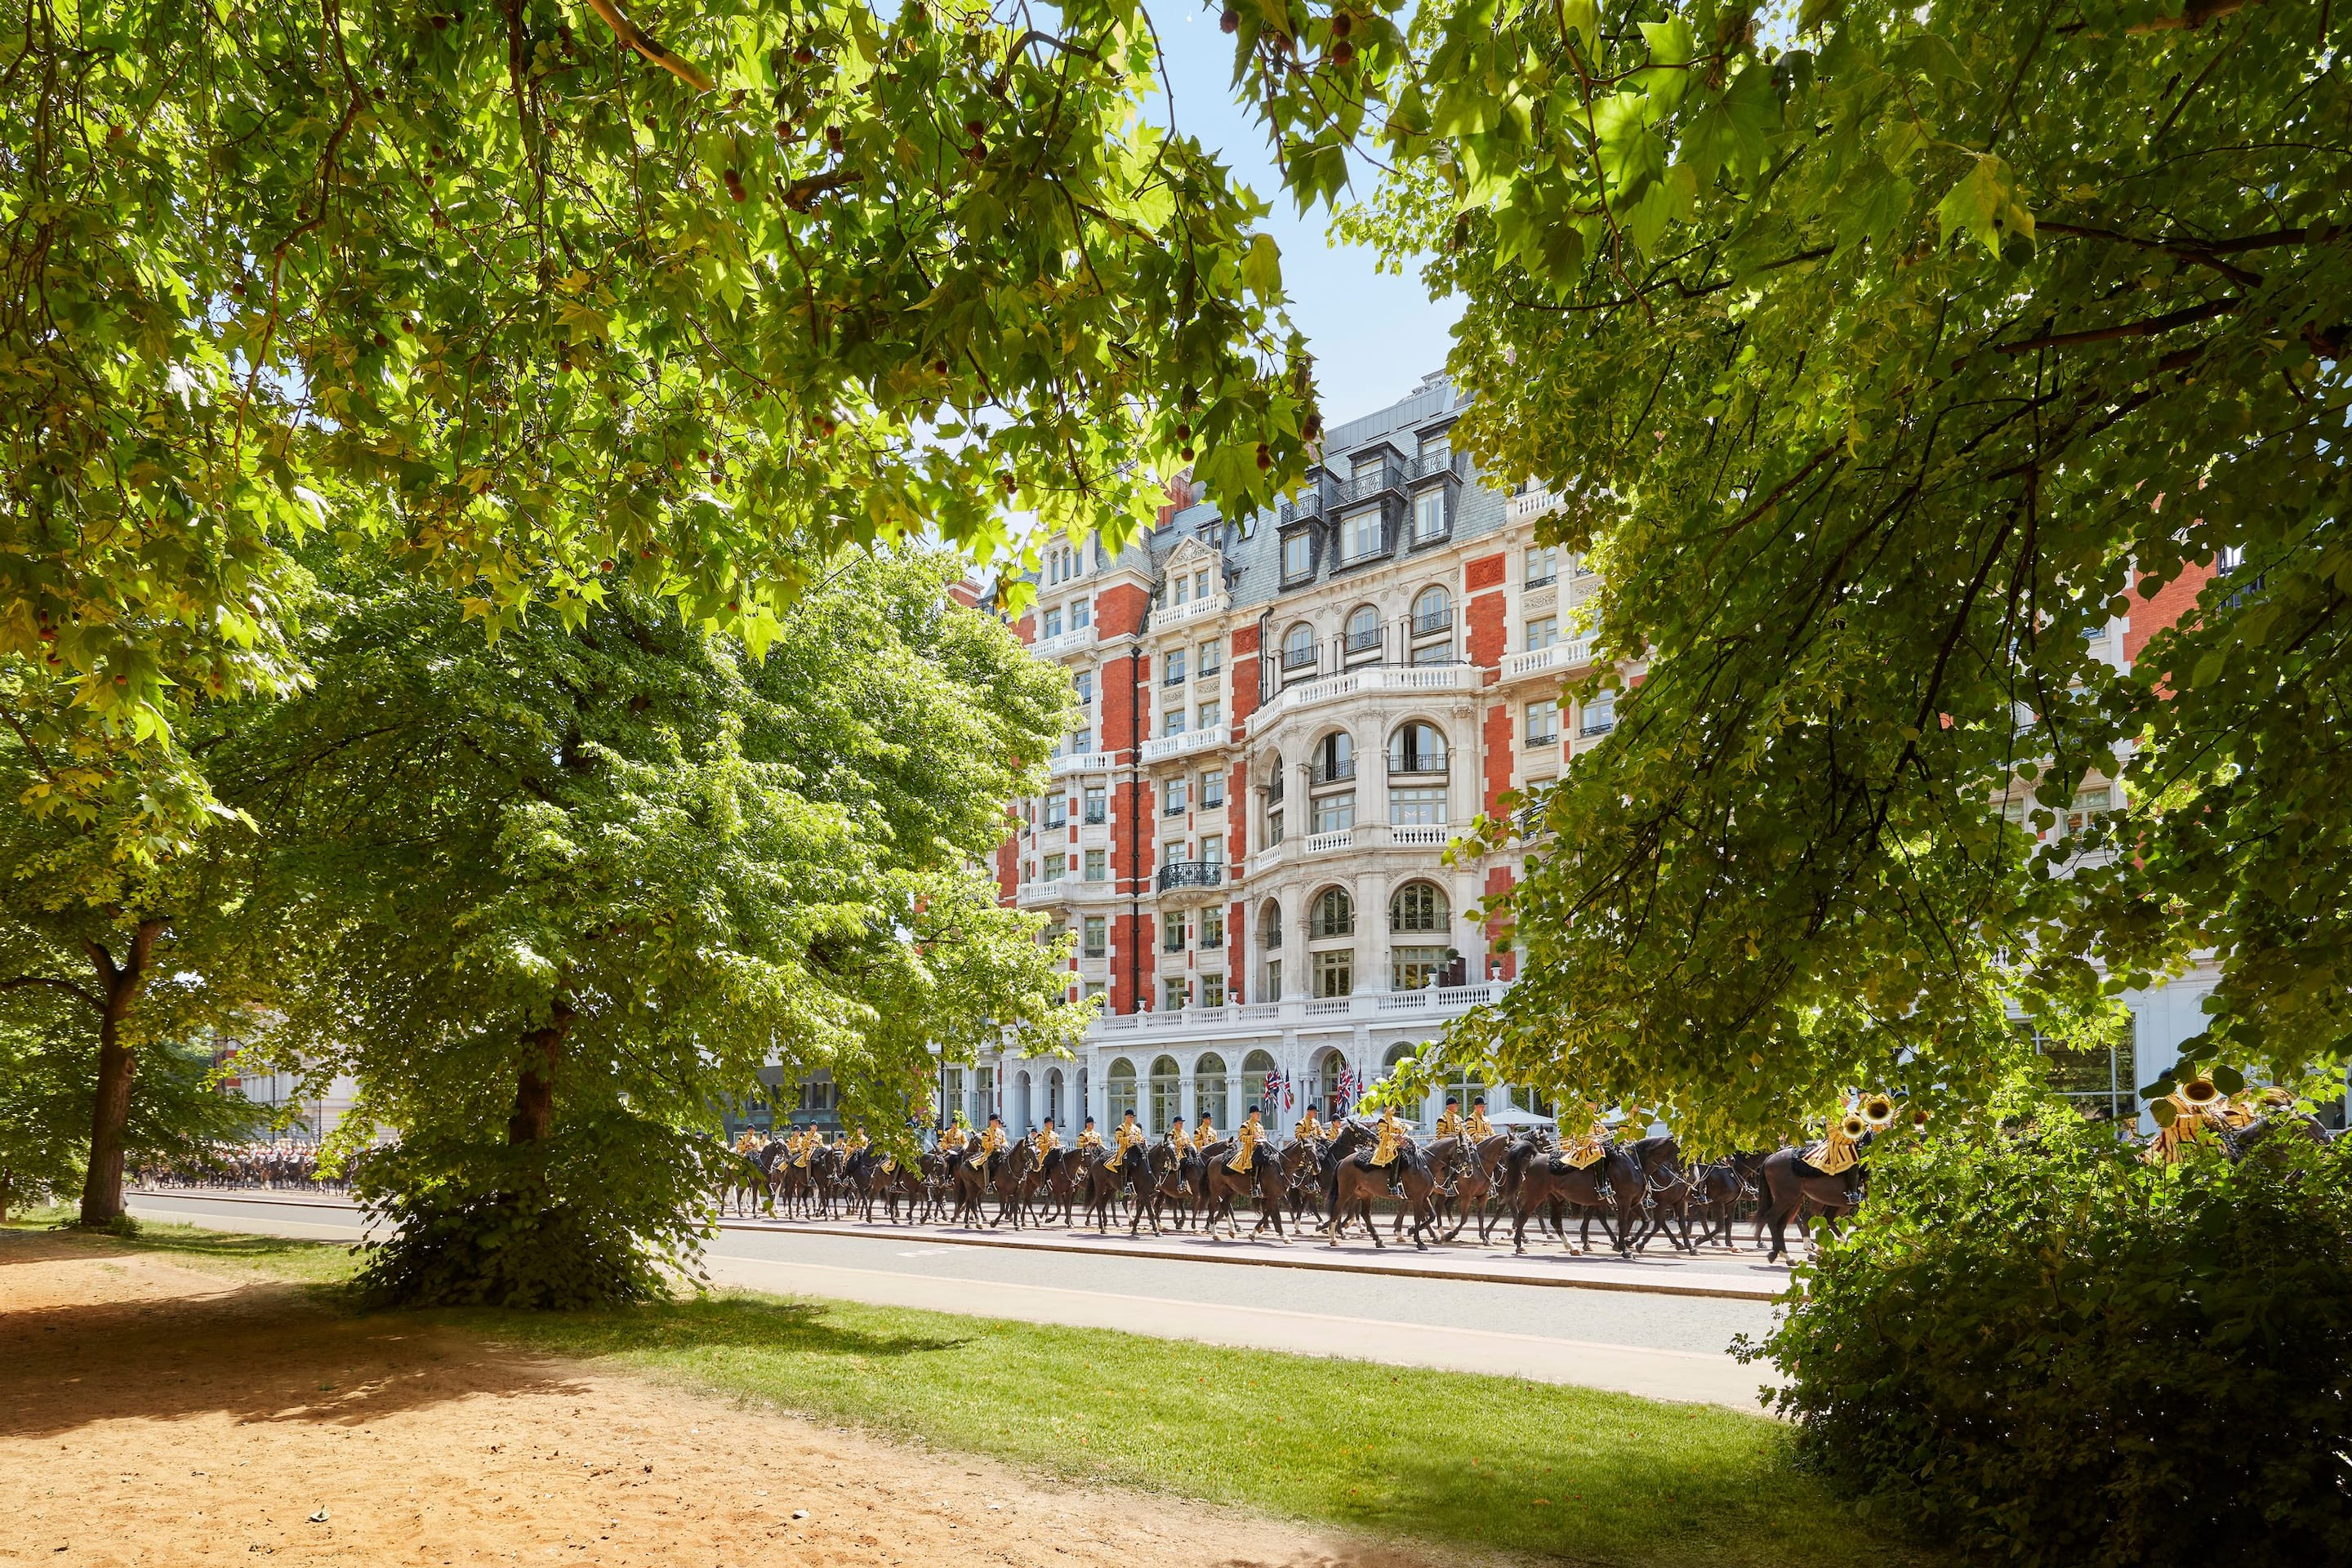 Exterior of Mandarin Oriental Hyde Park, London with guards on horses passing by